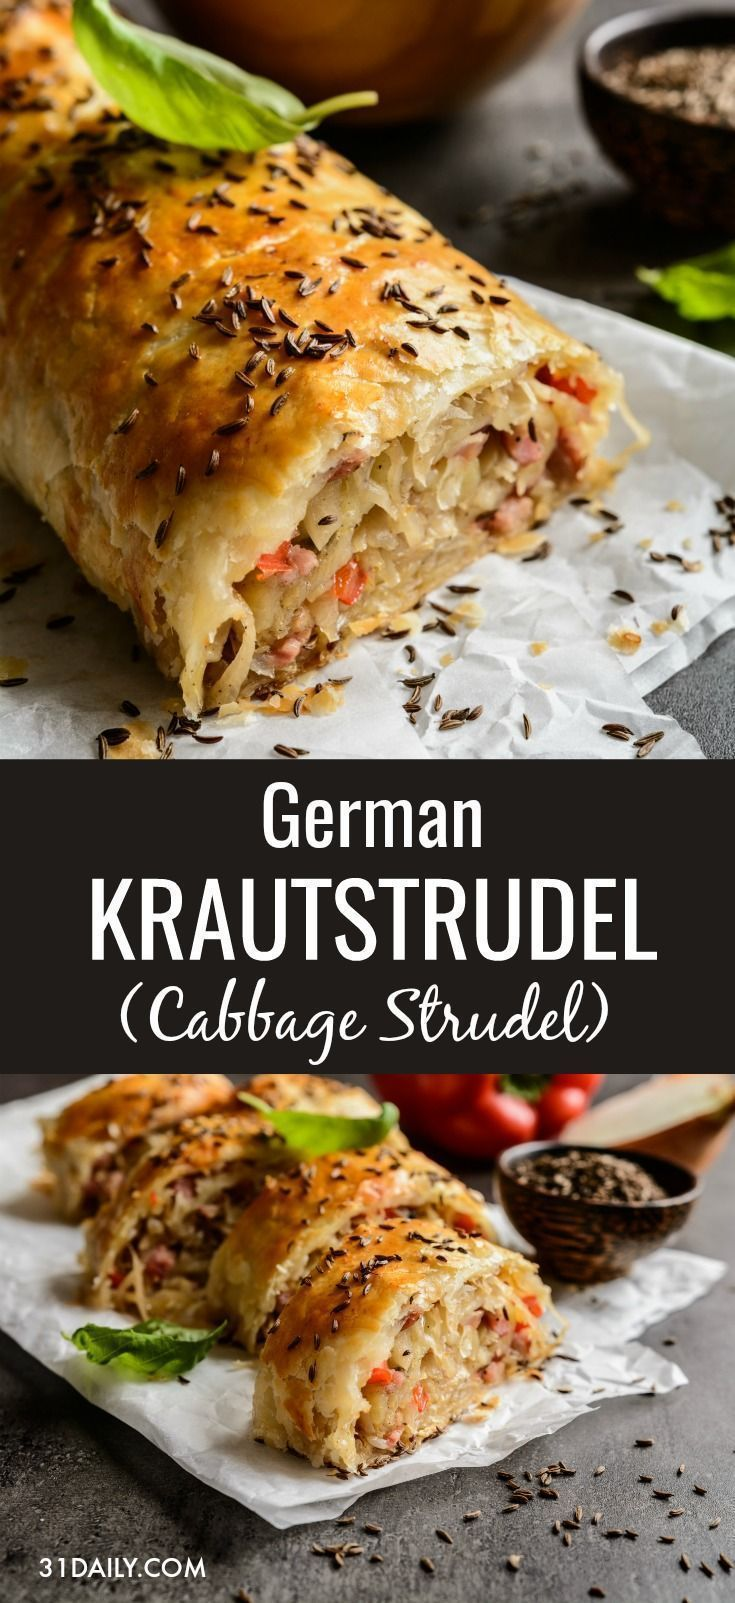 German Krautstrudel: An Easy Savory Cabbage Roll - 31 Daily